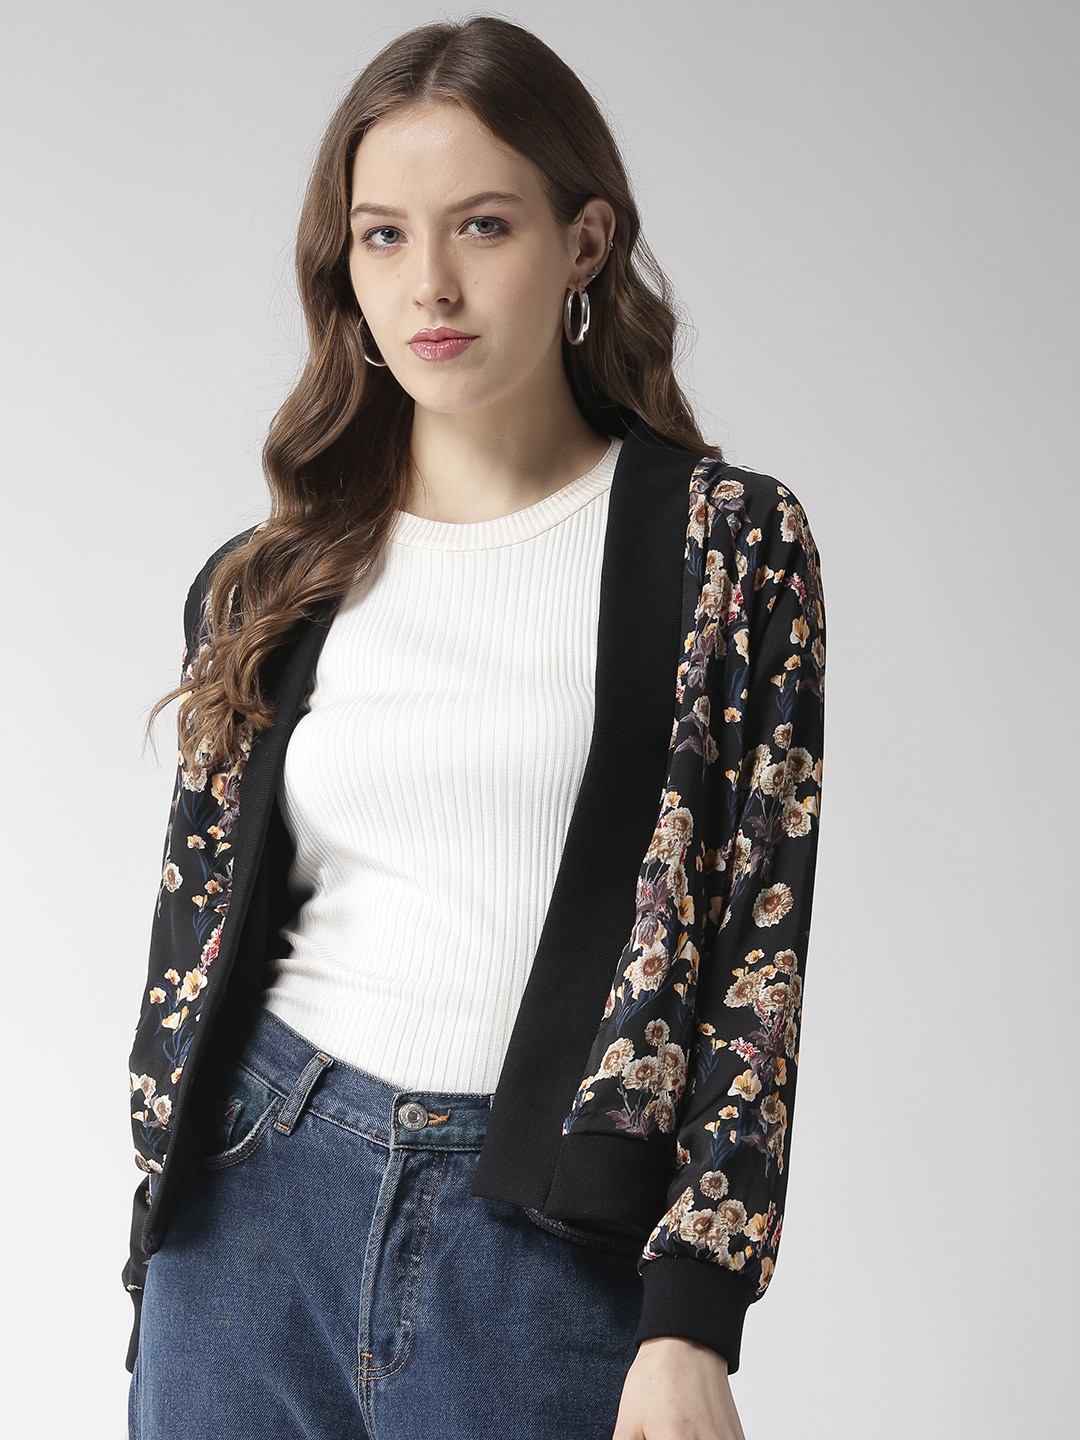 582e1508c45 Madame Store - Buy Women Clothing at Madame Online Store